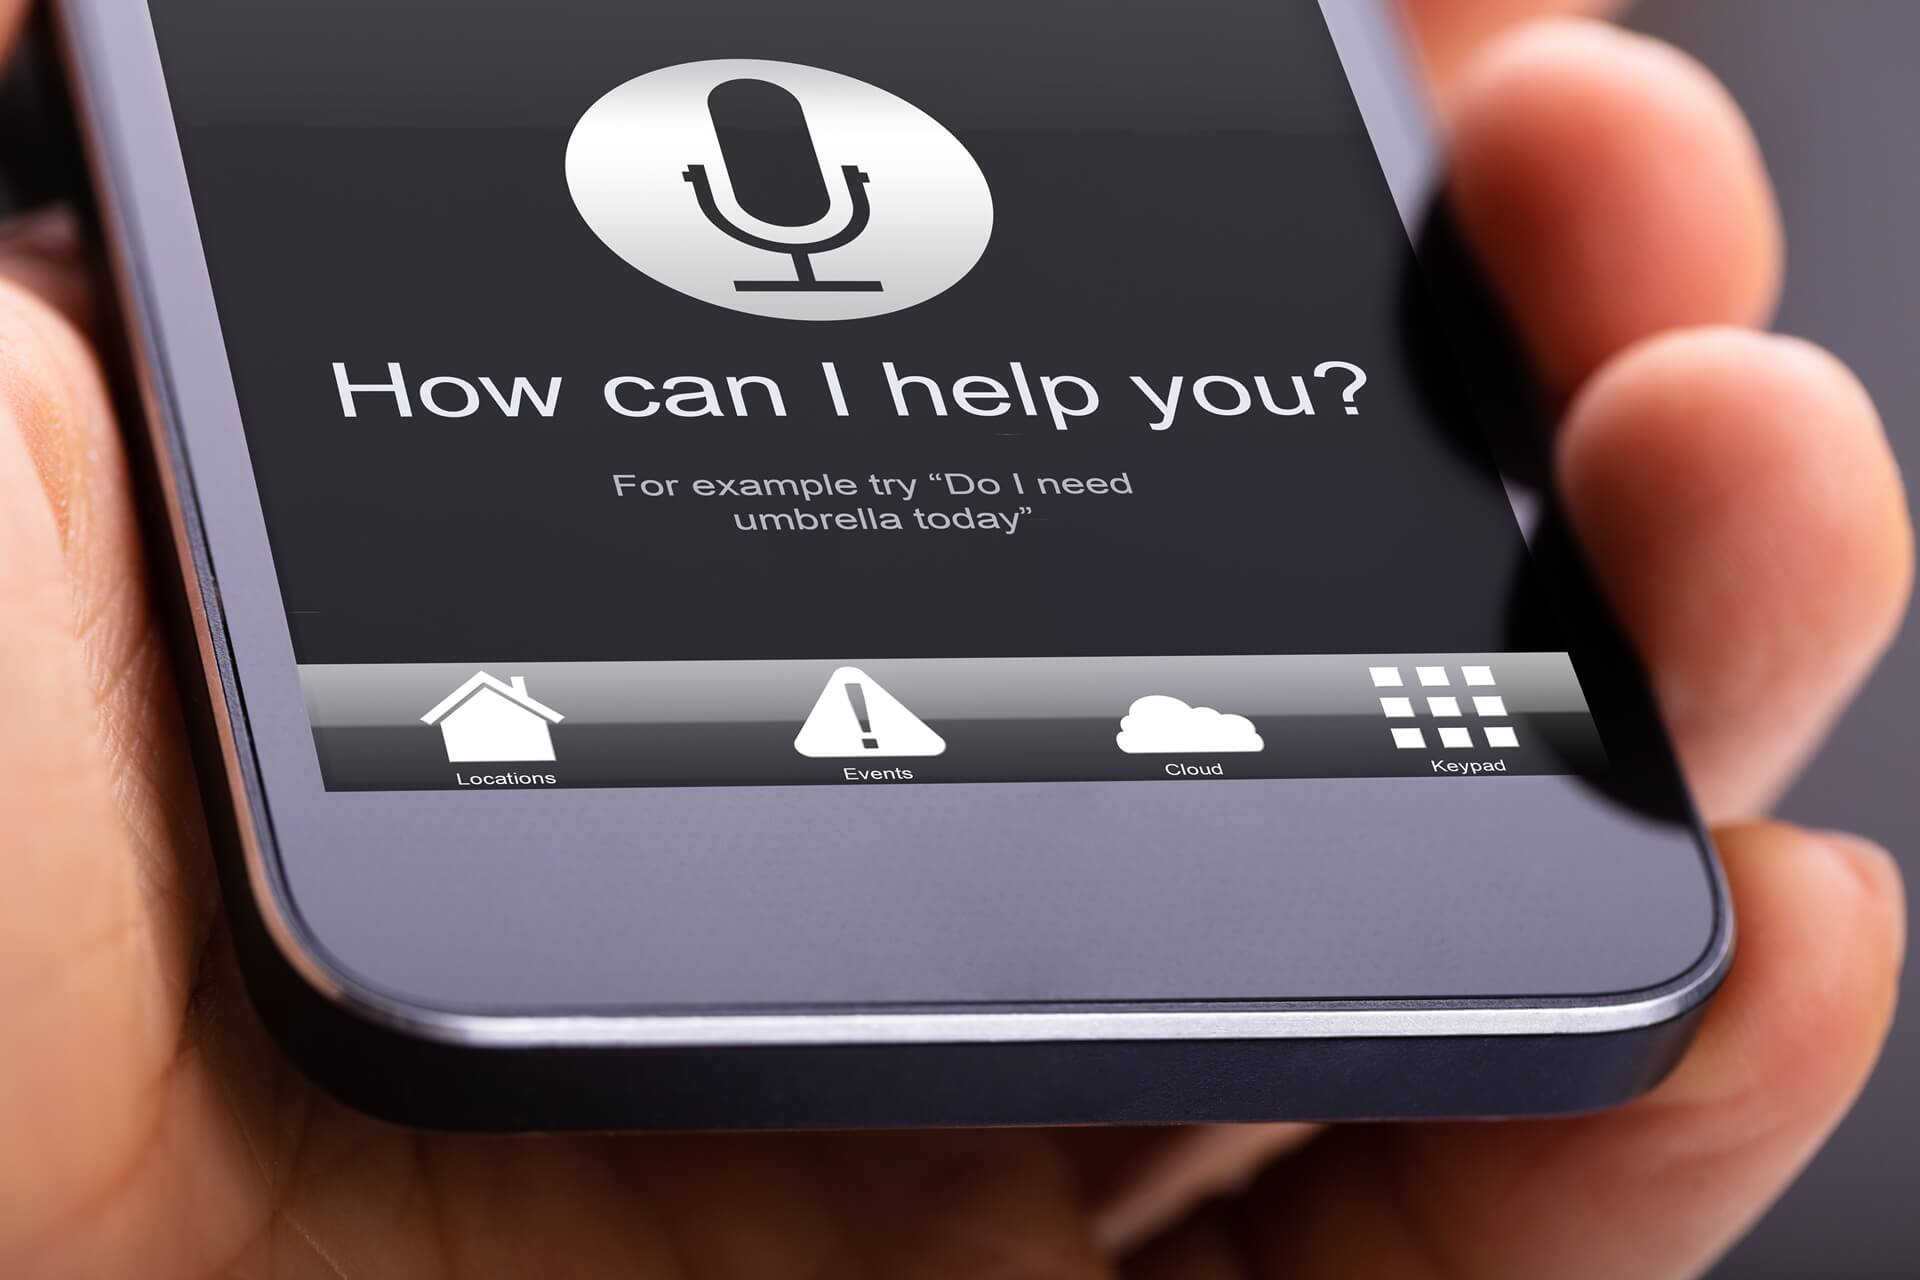 Voice search screen on a smartphone